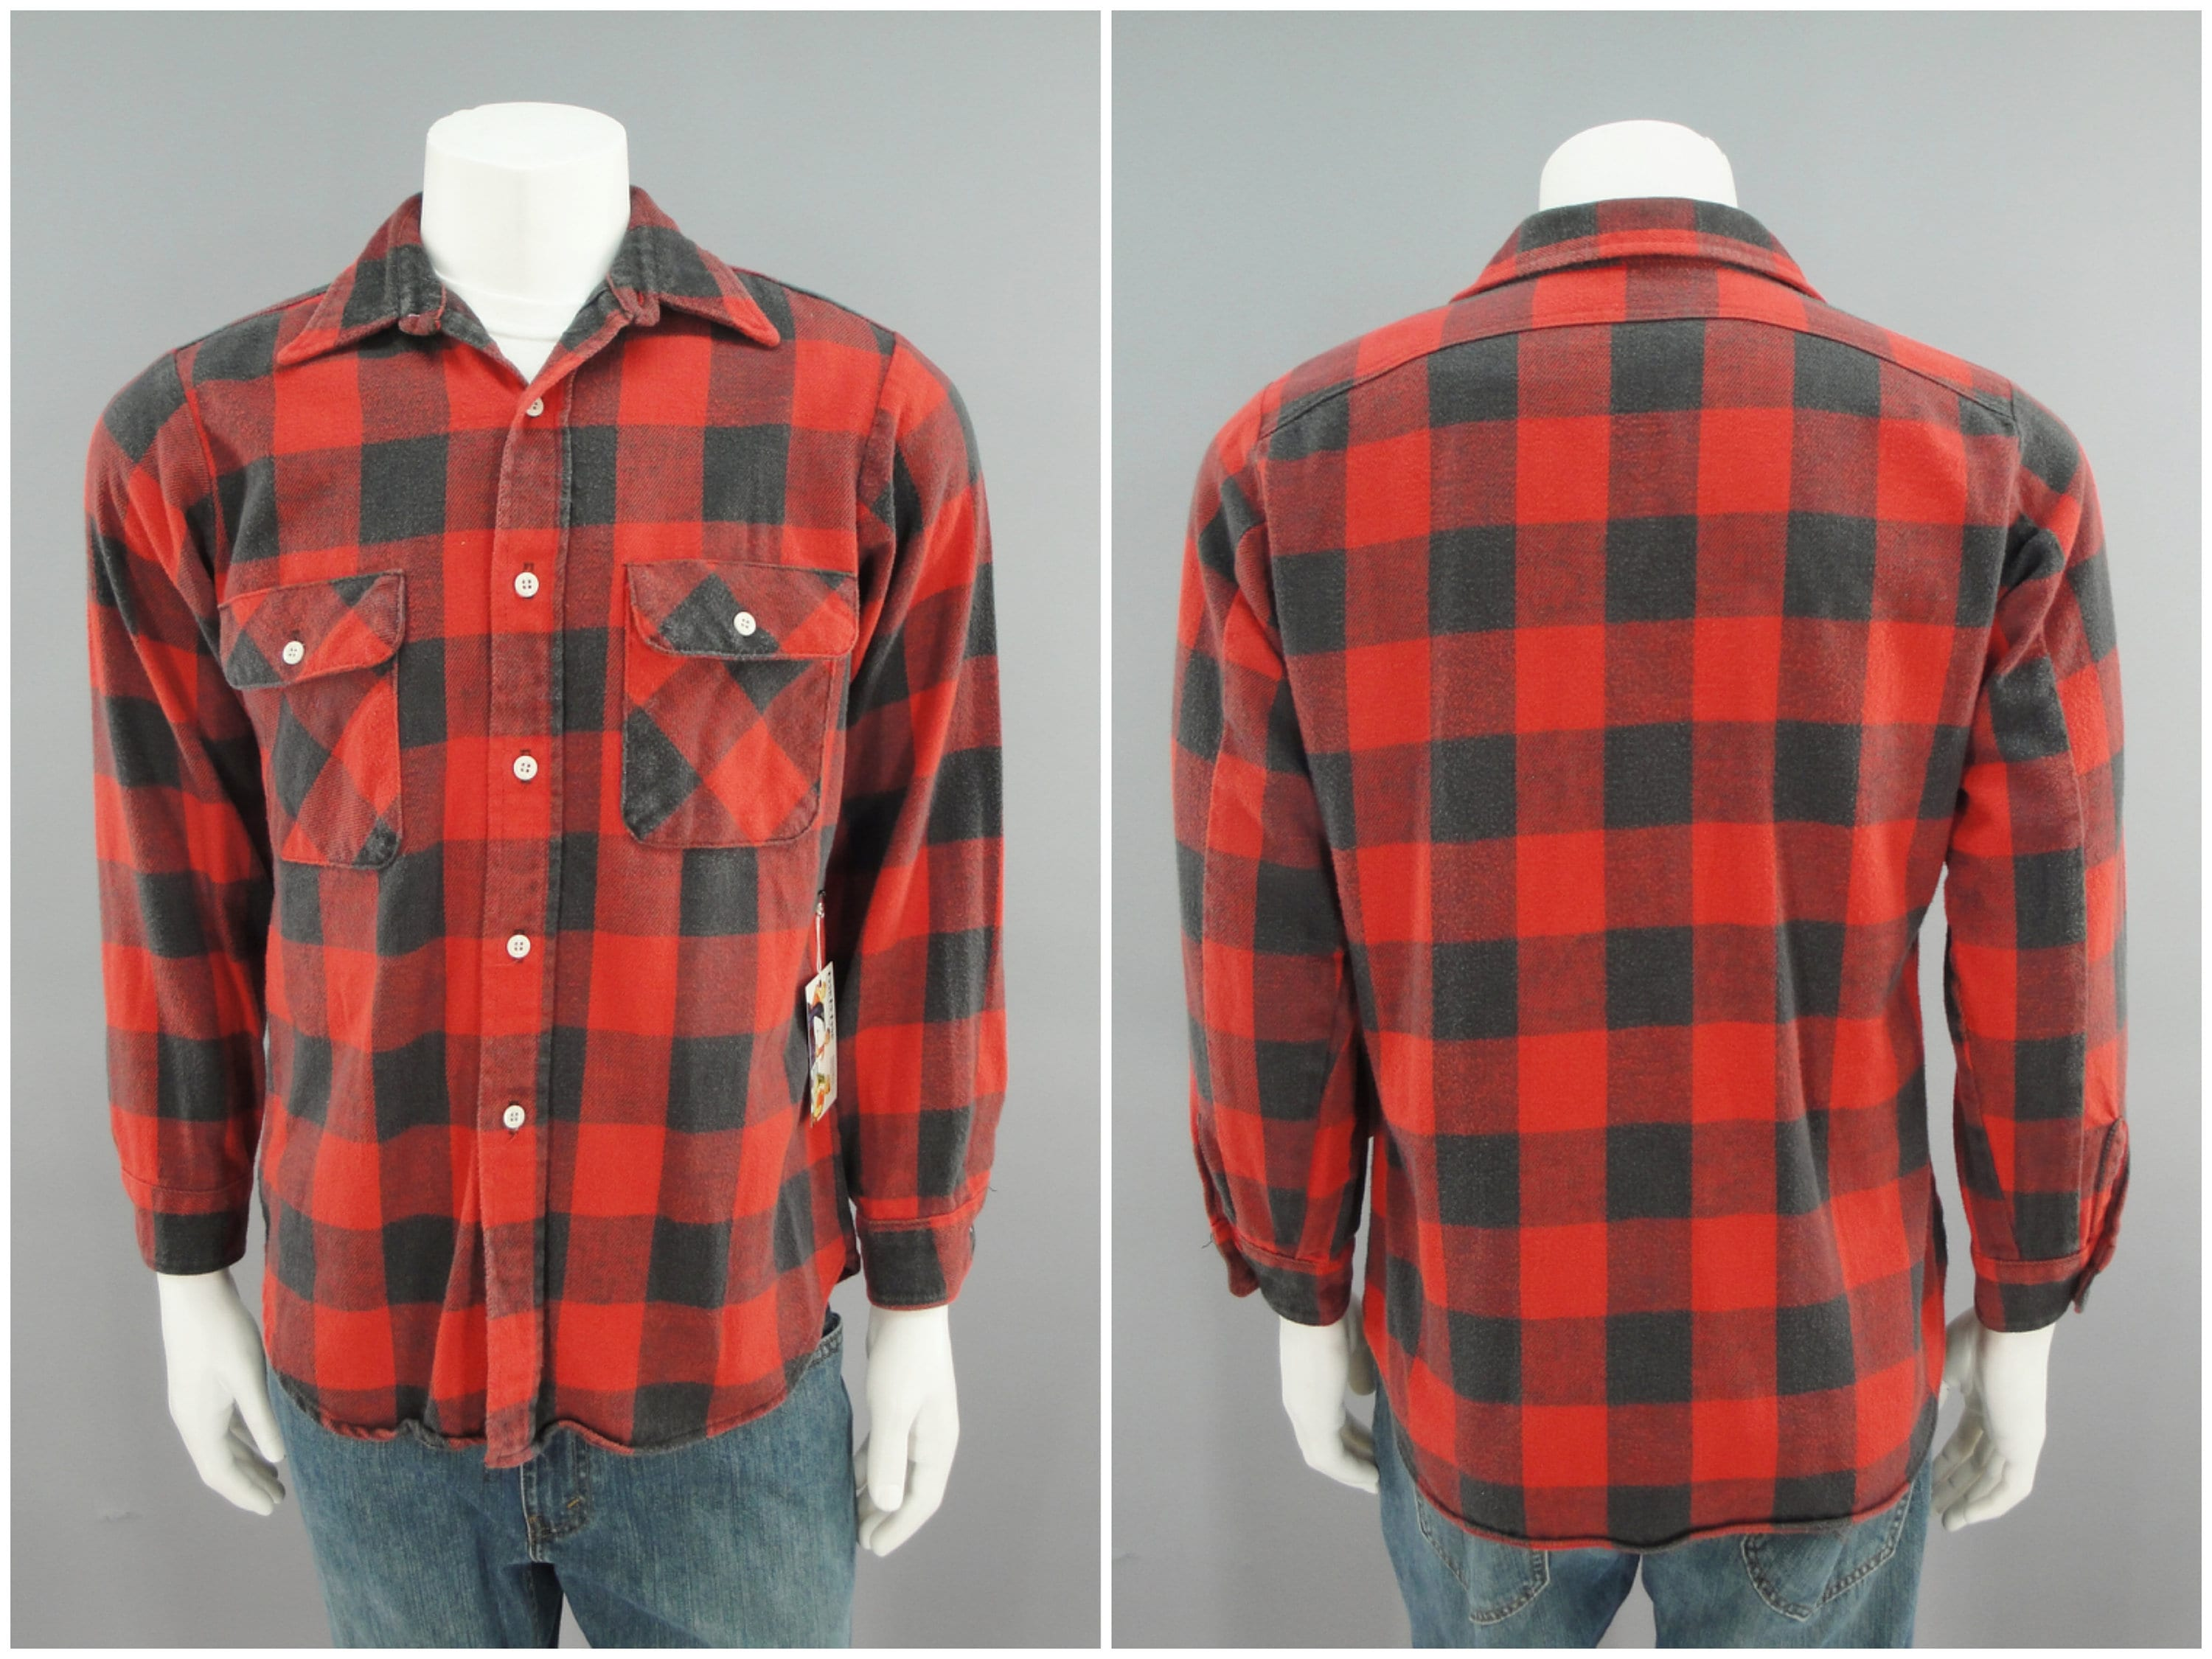 1970s Mens Shirt Styles – Vintage 70s Shirts for Guys 1970S Vintage Traditional Red  Black Buffalo Plaid Cotton Flannel By Big Yank, Hippie Grunge Style, 70S Mens Size Medium, 42 $0.00 AT vintagedancer.com